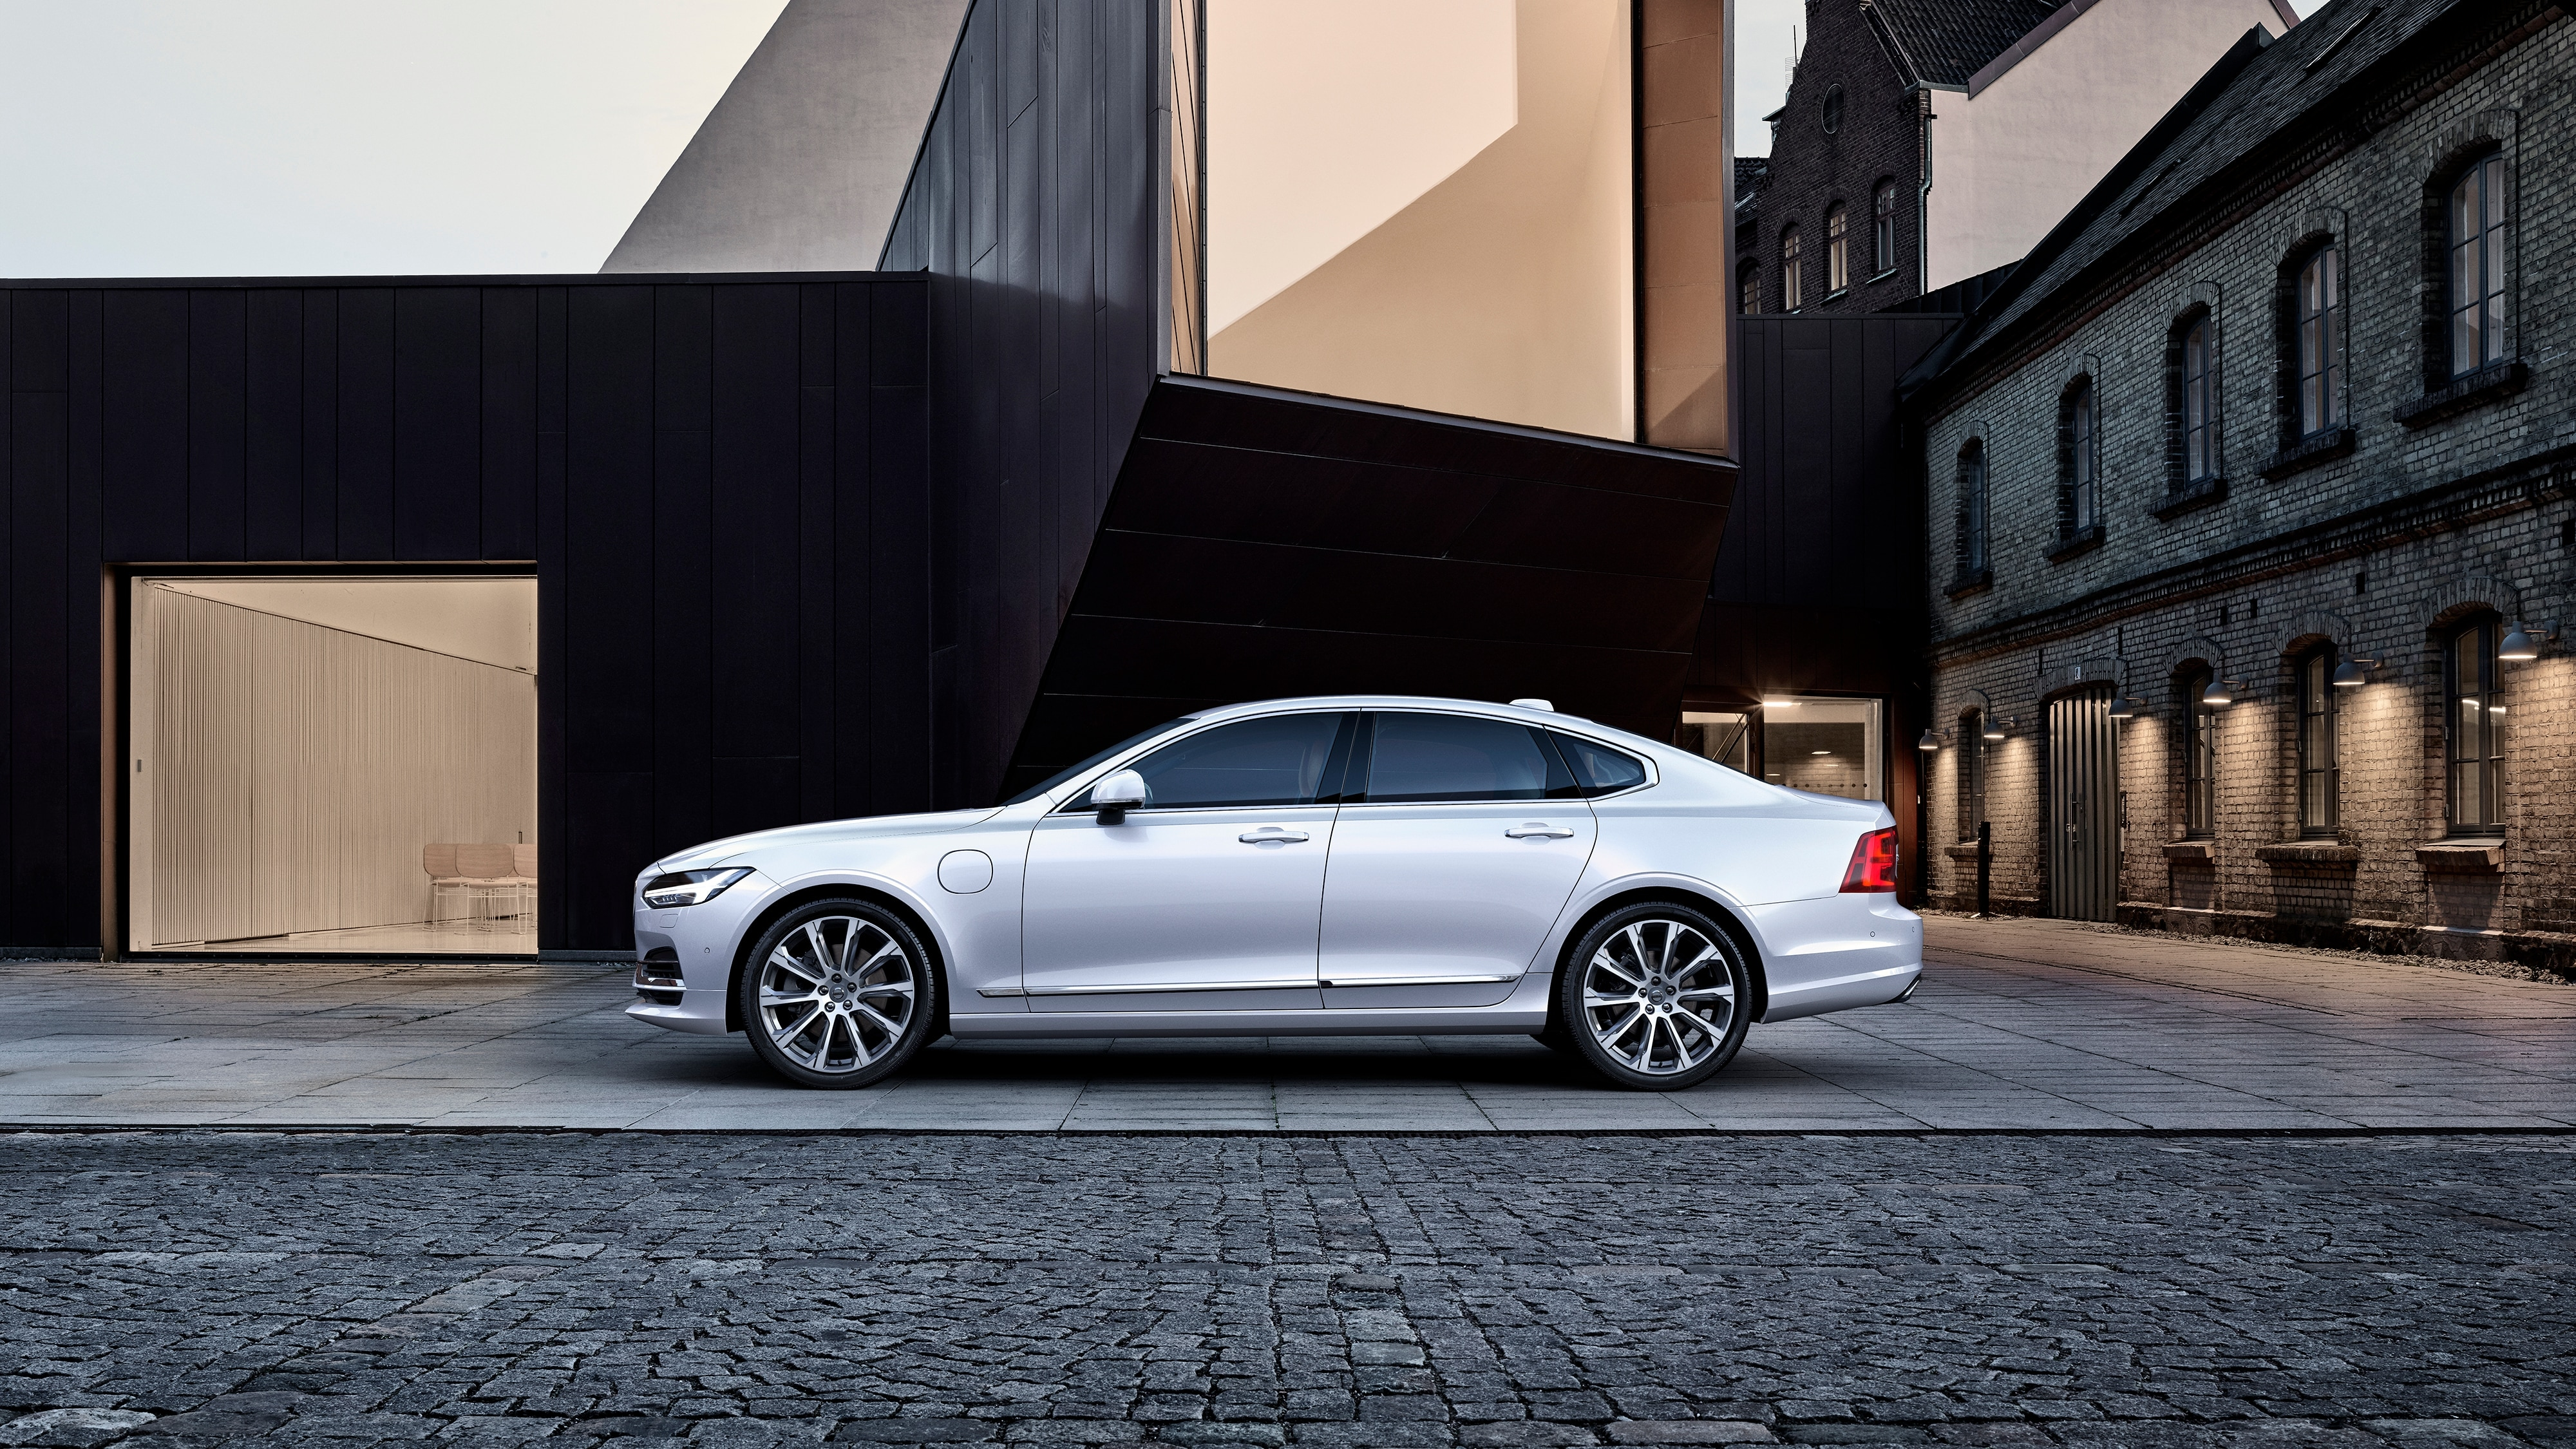 Volvo S90 lateral color blanco